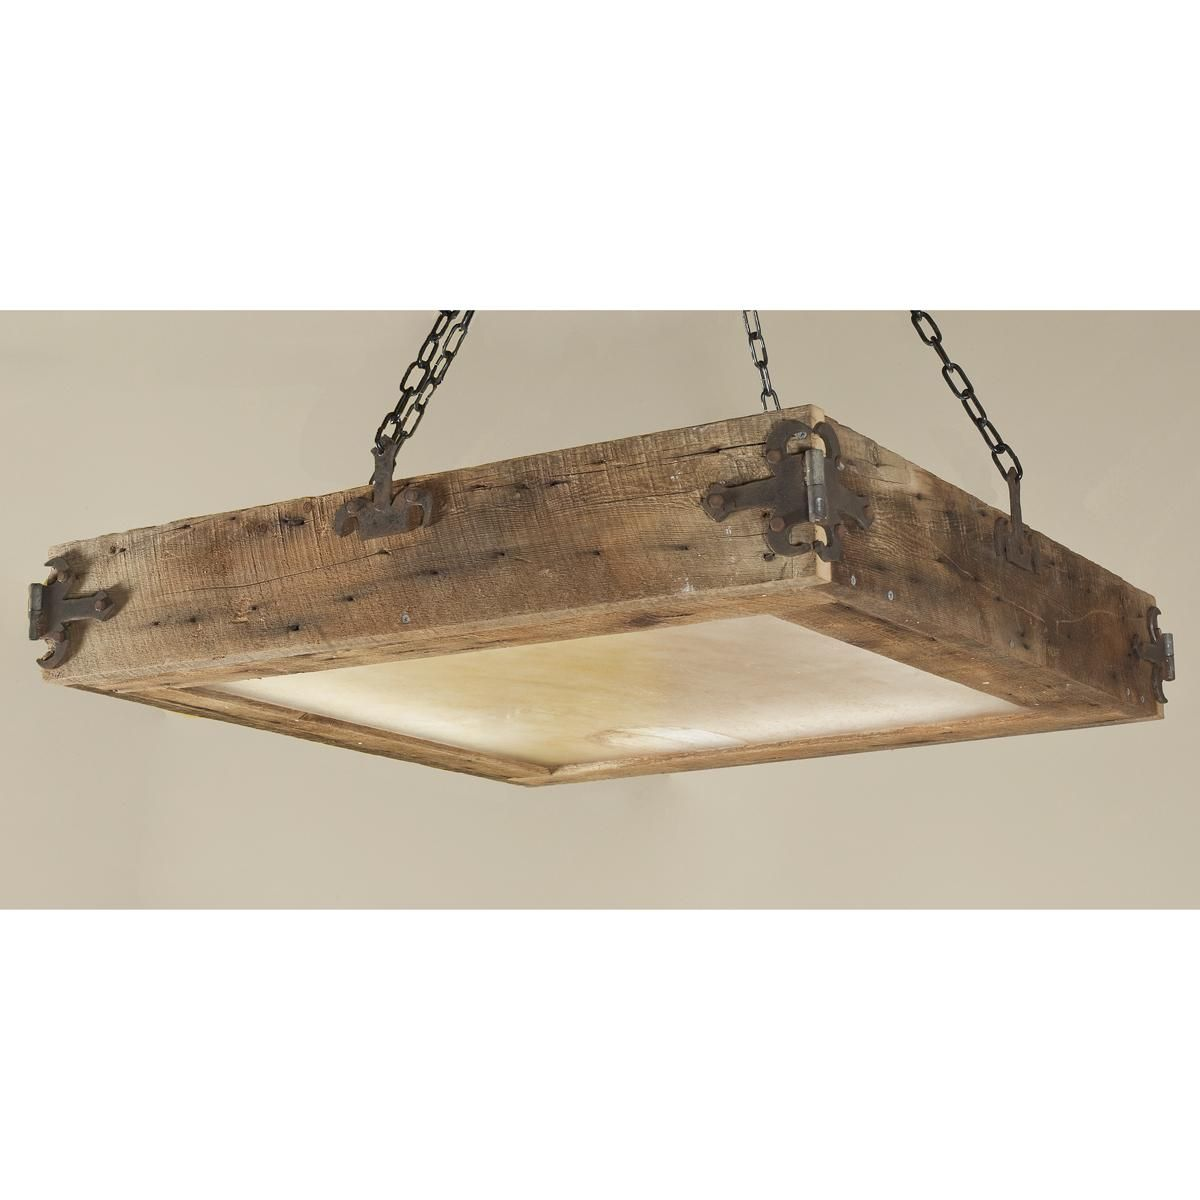 Reclaimed Wood Ceiling Light I Platform Kitchen Lights But Love This Pathetically Low Ceilings In My Domicile Mean No